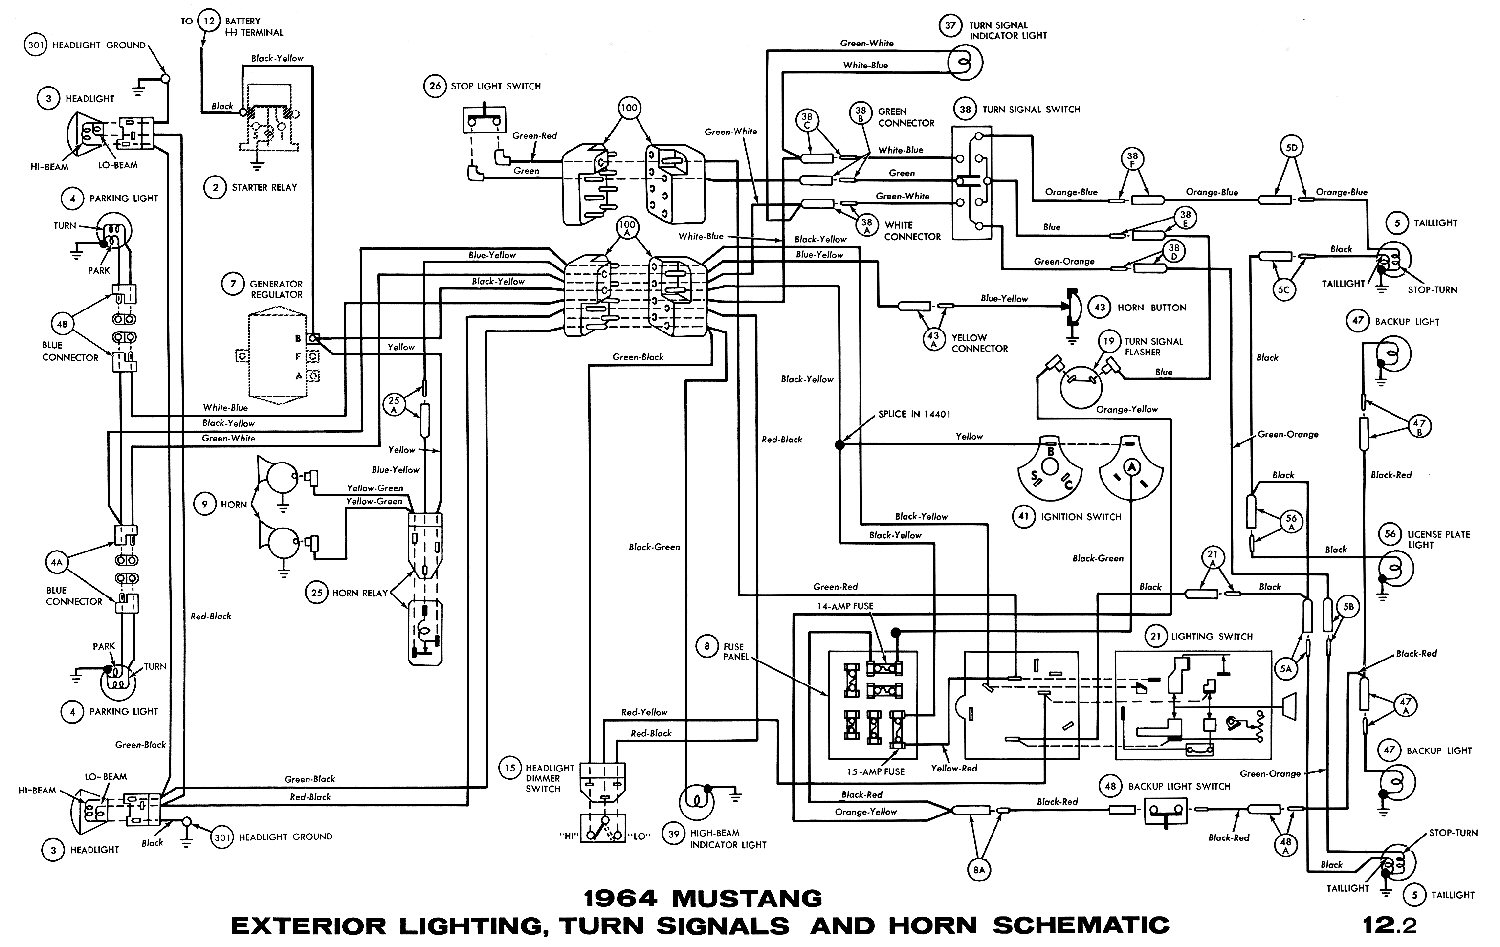 1964i 1964 mustang wiring diagrams average joe restoration 67 mustang dash wiring diagram at virtualis.co